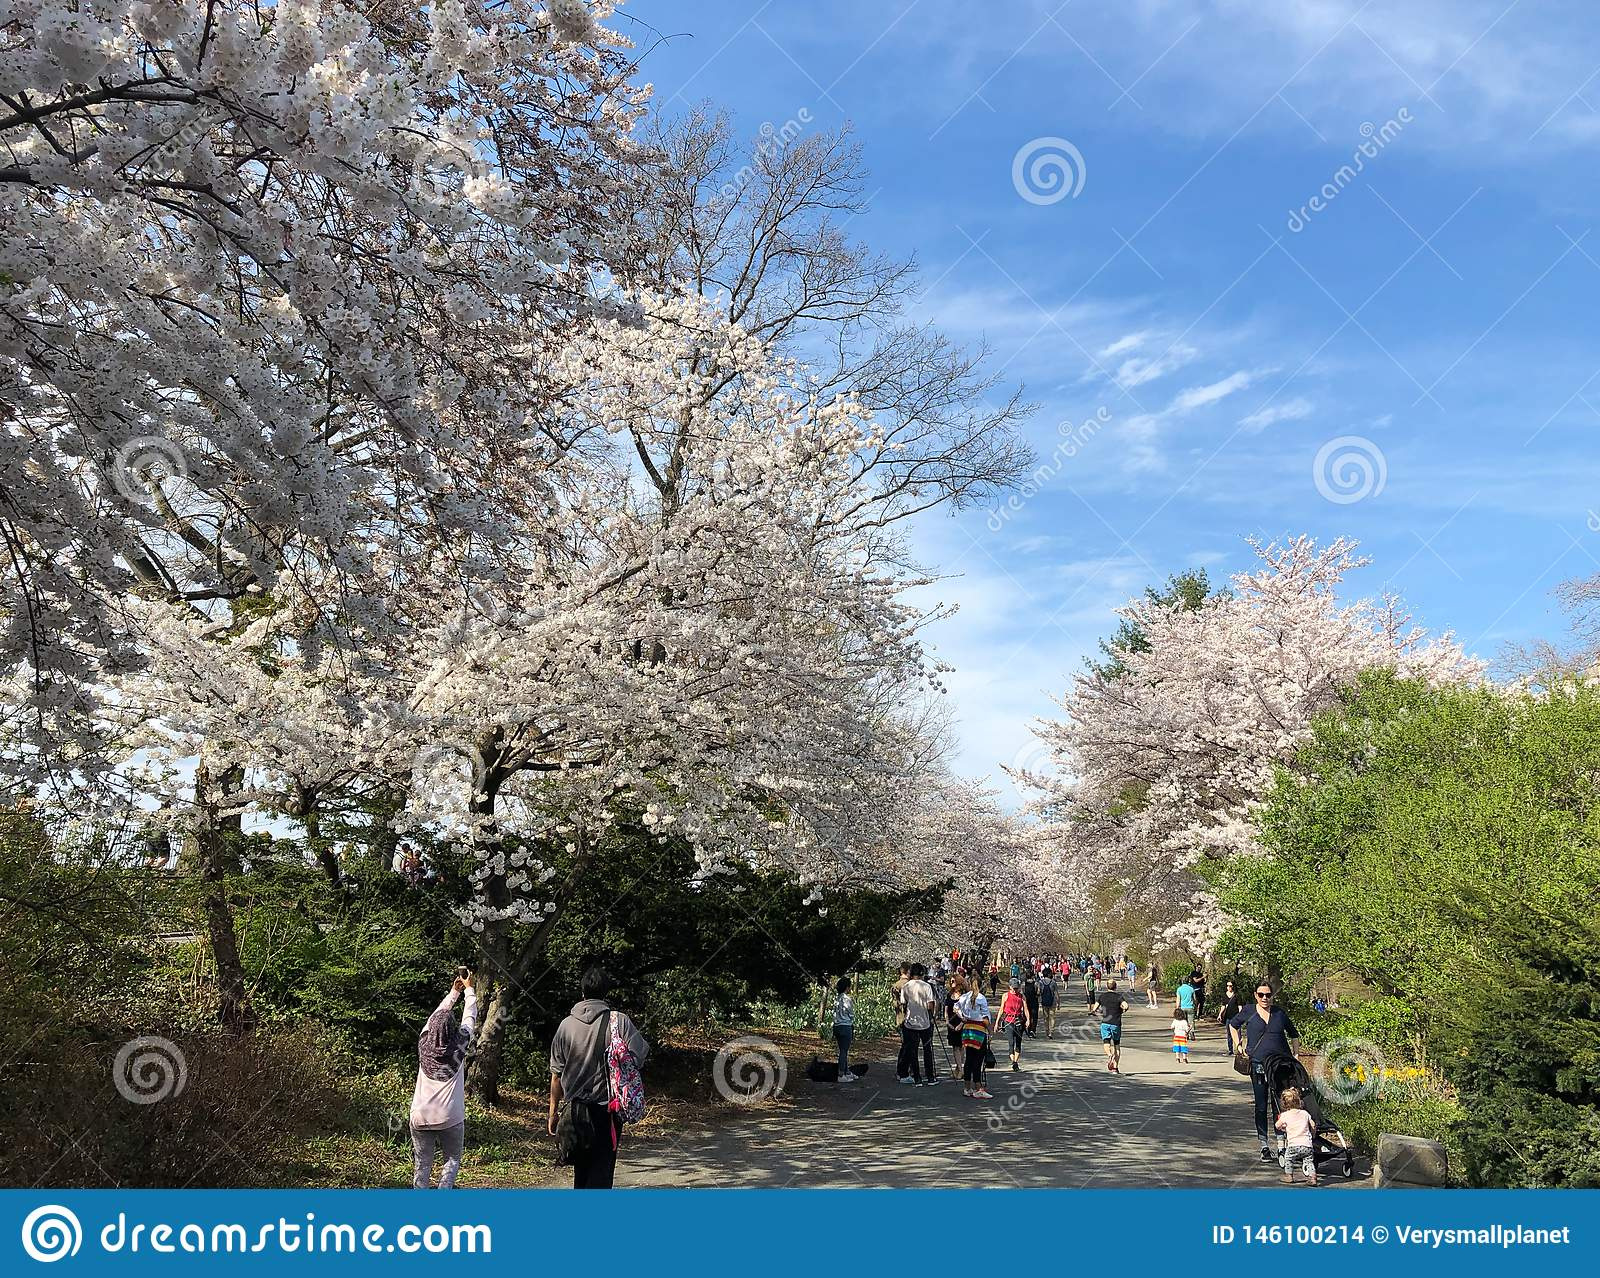 New York City, NY, USA - April 13 2019: Gorgeous cherry blossom in Central Park